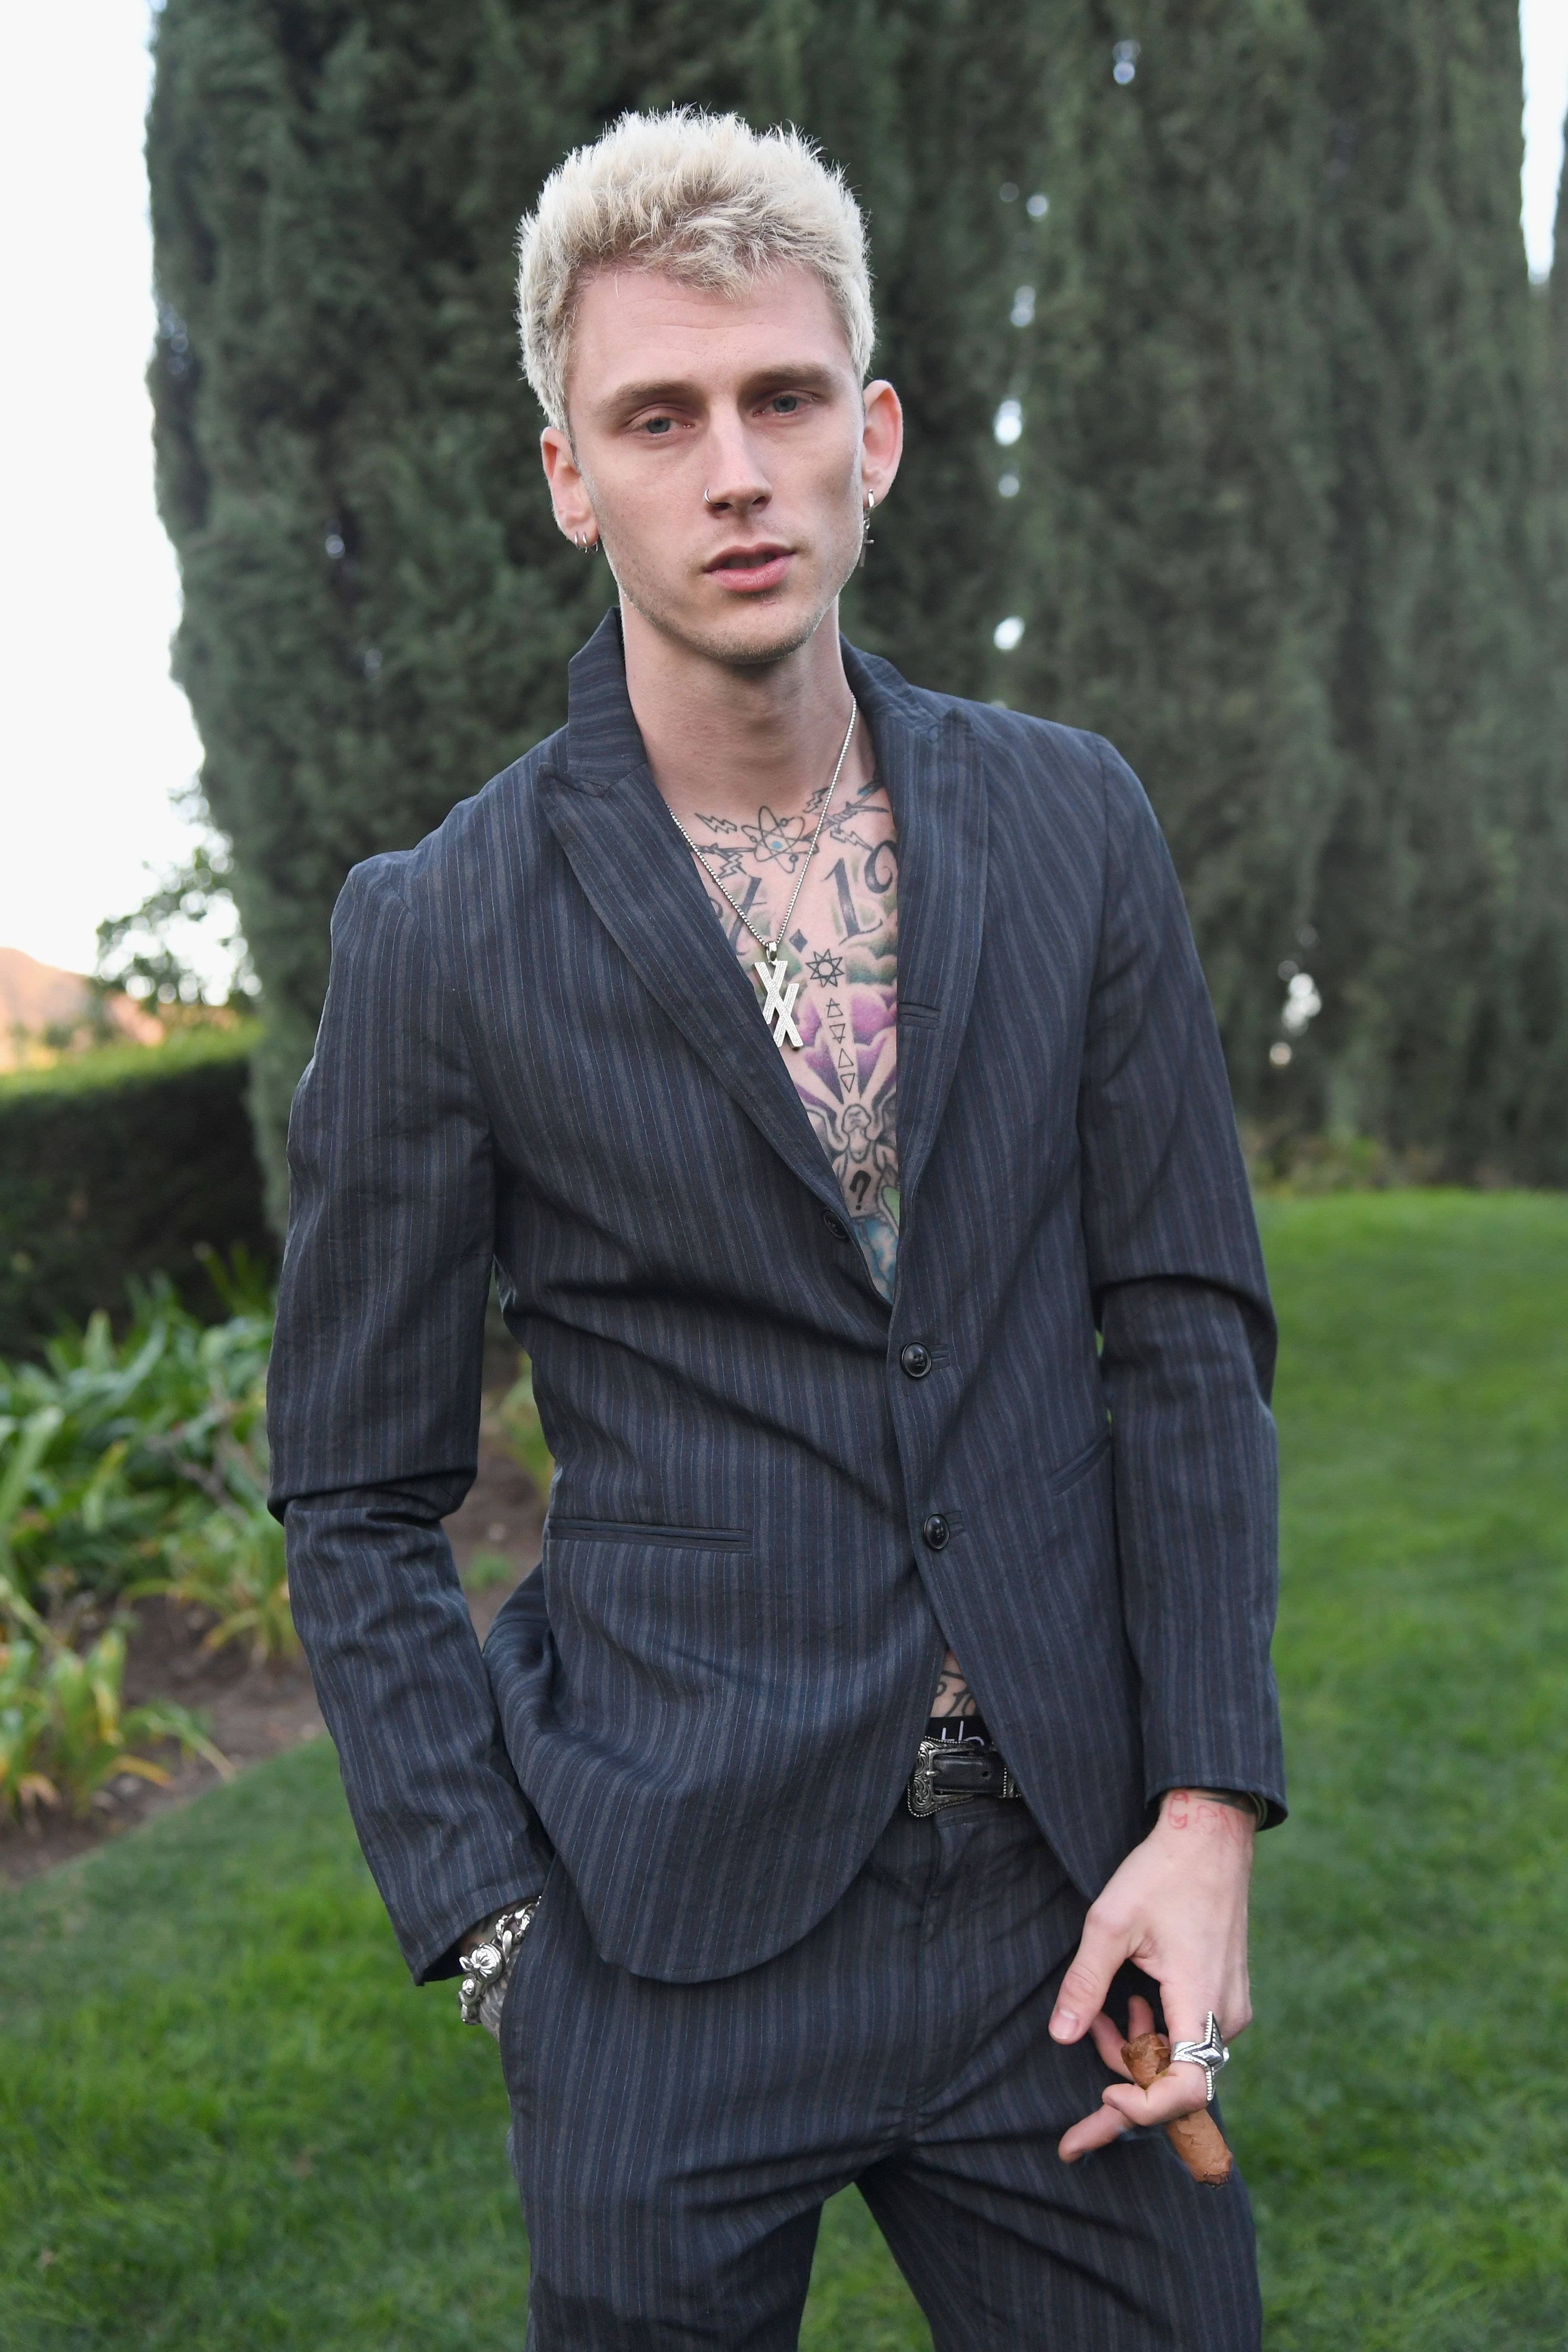 Machine Gun Kelly at the 2019 Roc Nation THE BRUNCH in February 2019 in Los Angeles | Source: Getty Images,